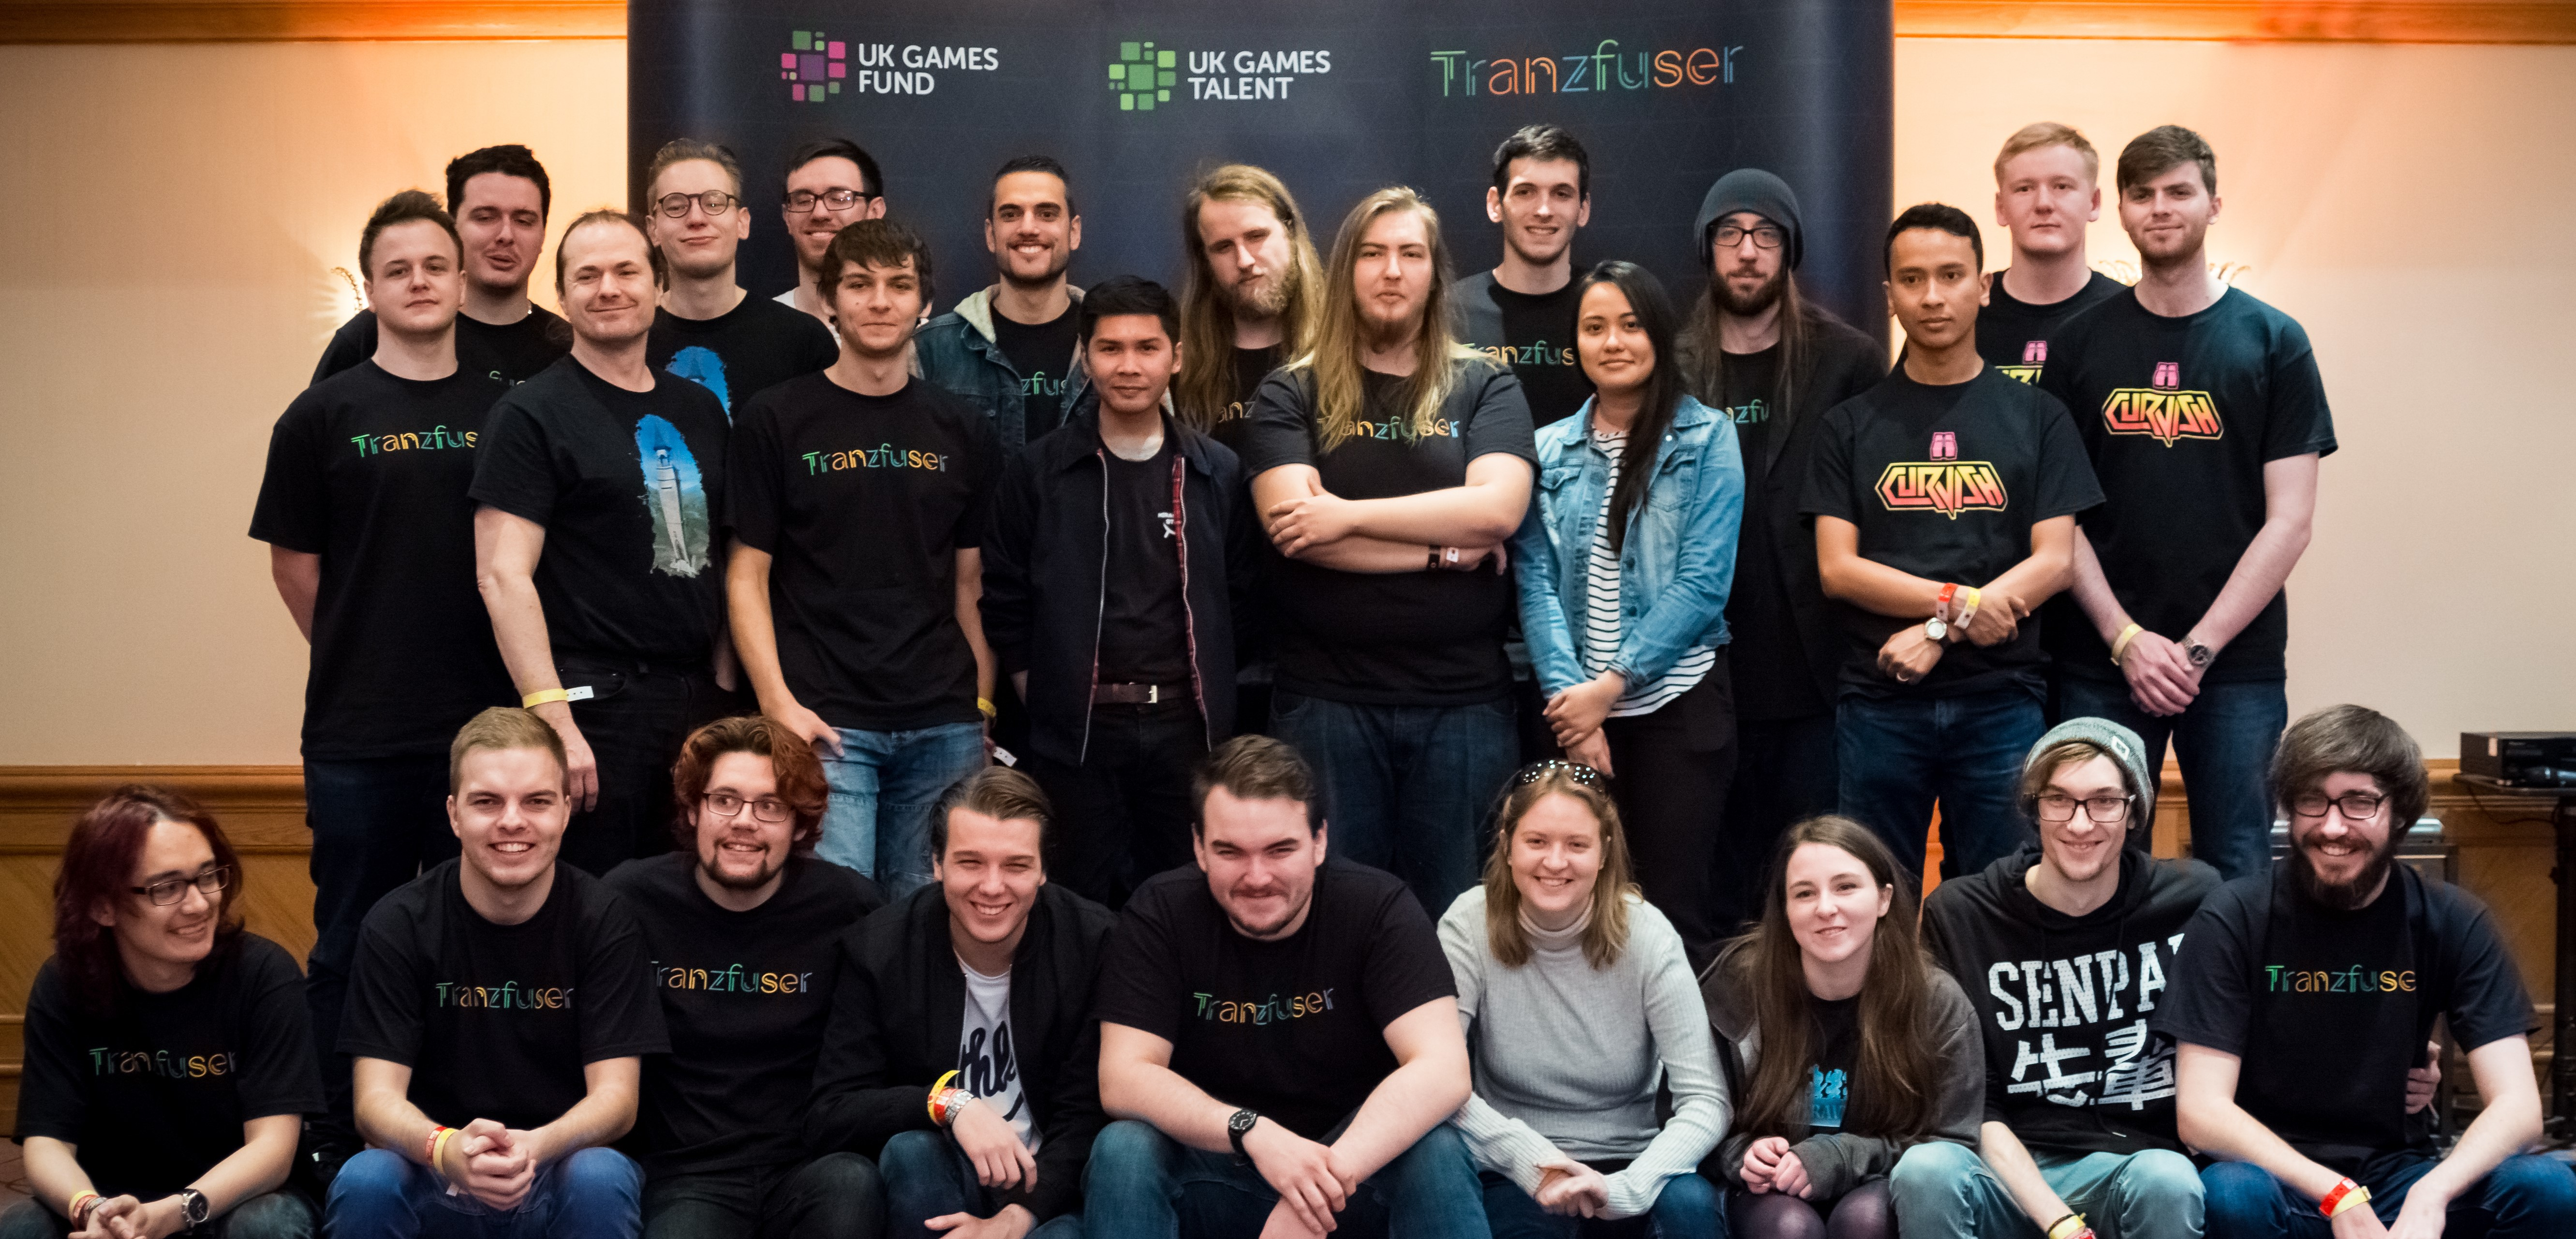 Tranzfuser offers funding for graduate games developers